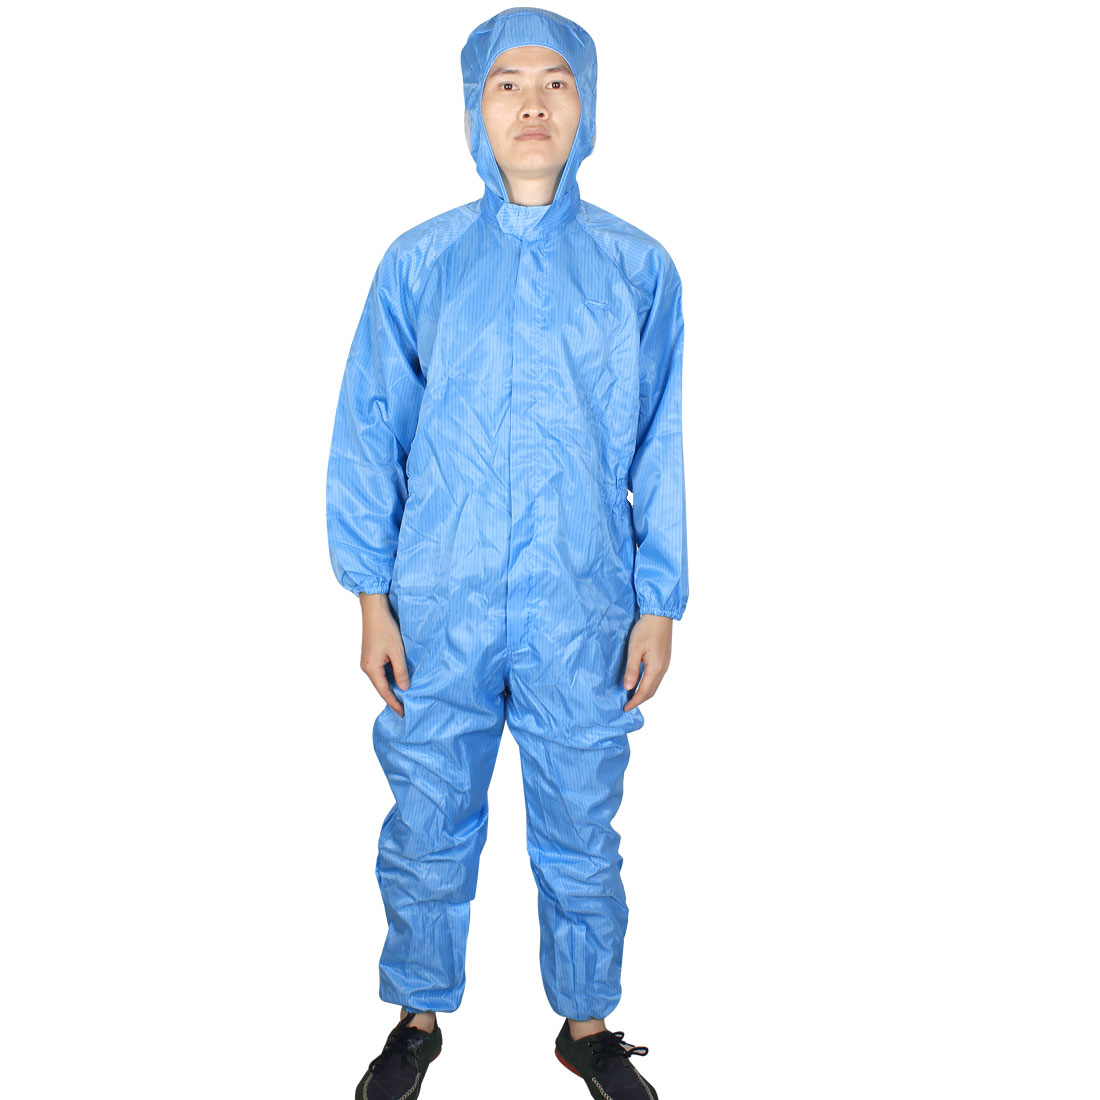 Unisex Long Sleeve Stripes Pattern Hooded Anti Static Jumpsuit Coverall Blue XL